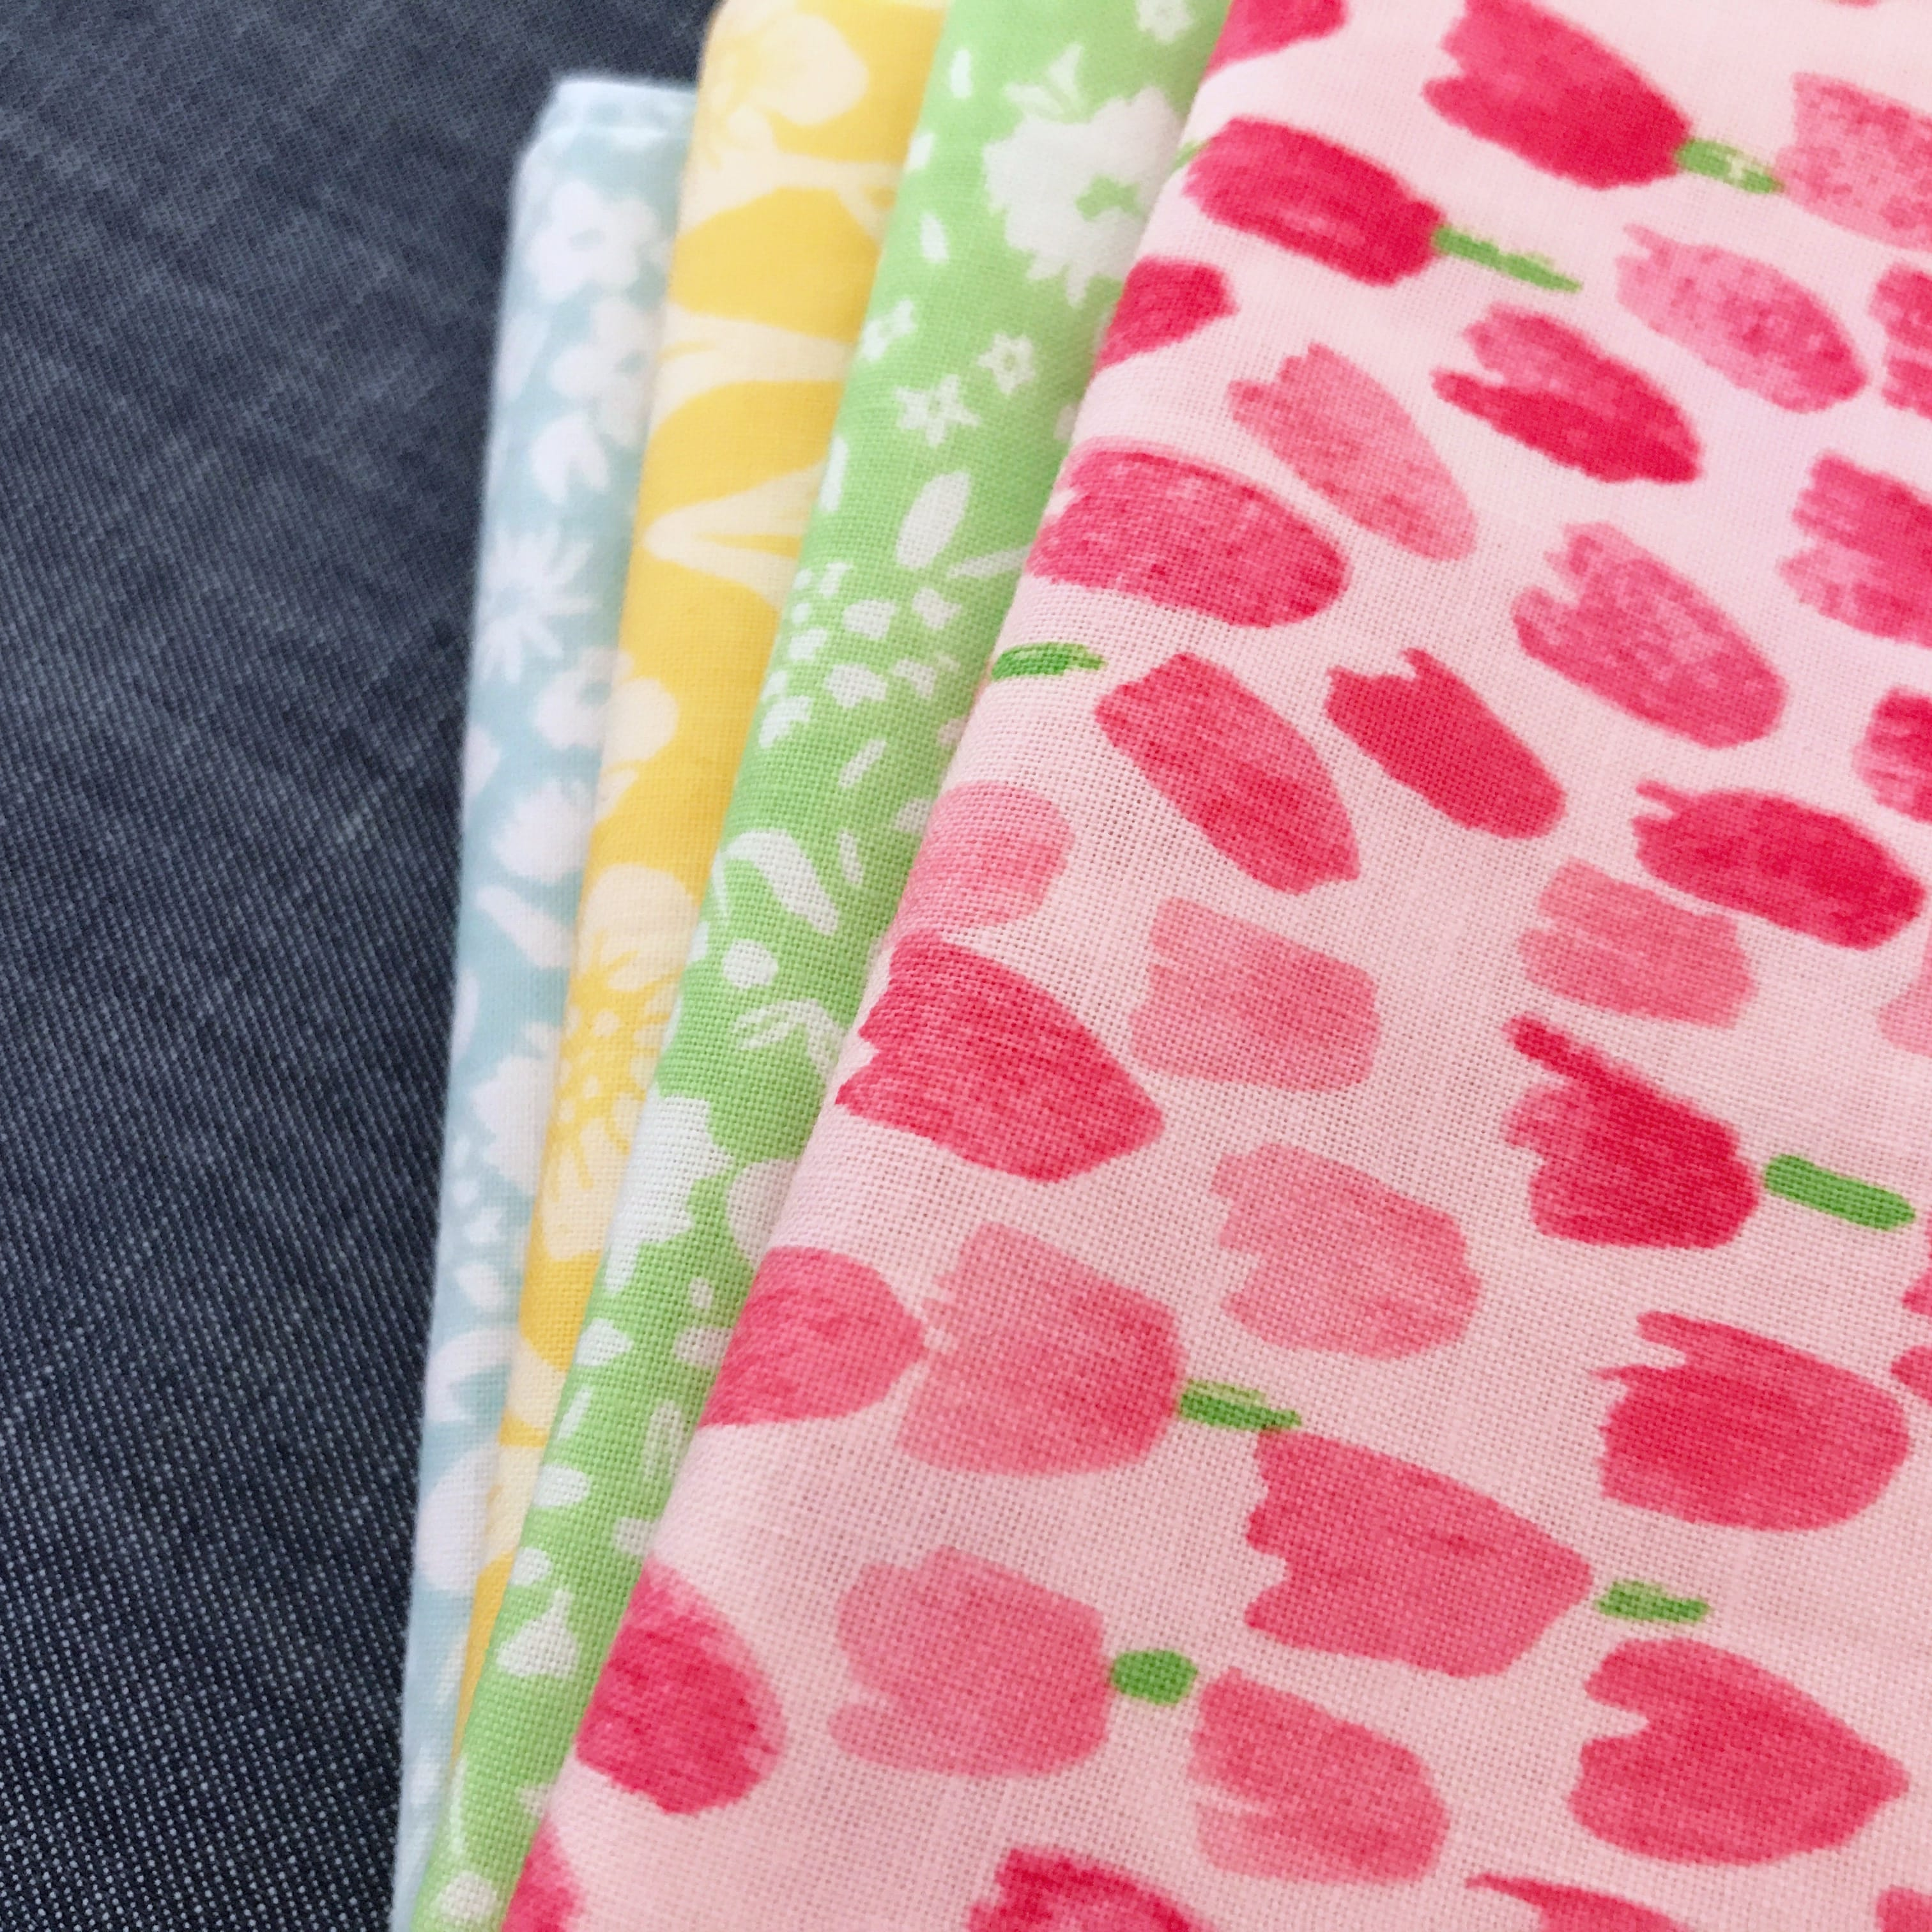 Summer Block Party Popsicle Party Create A Popsicle Party Quilt